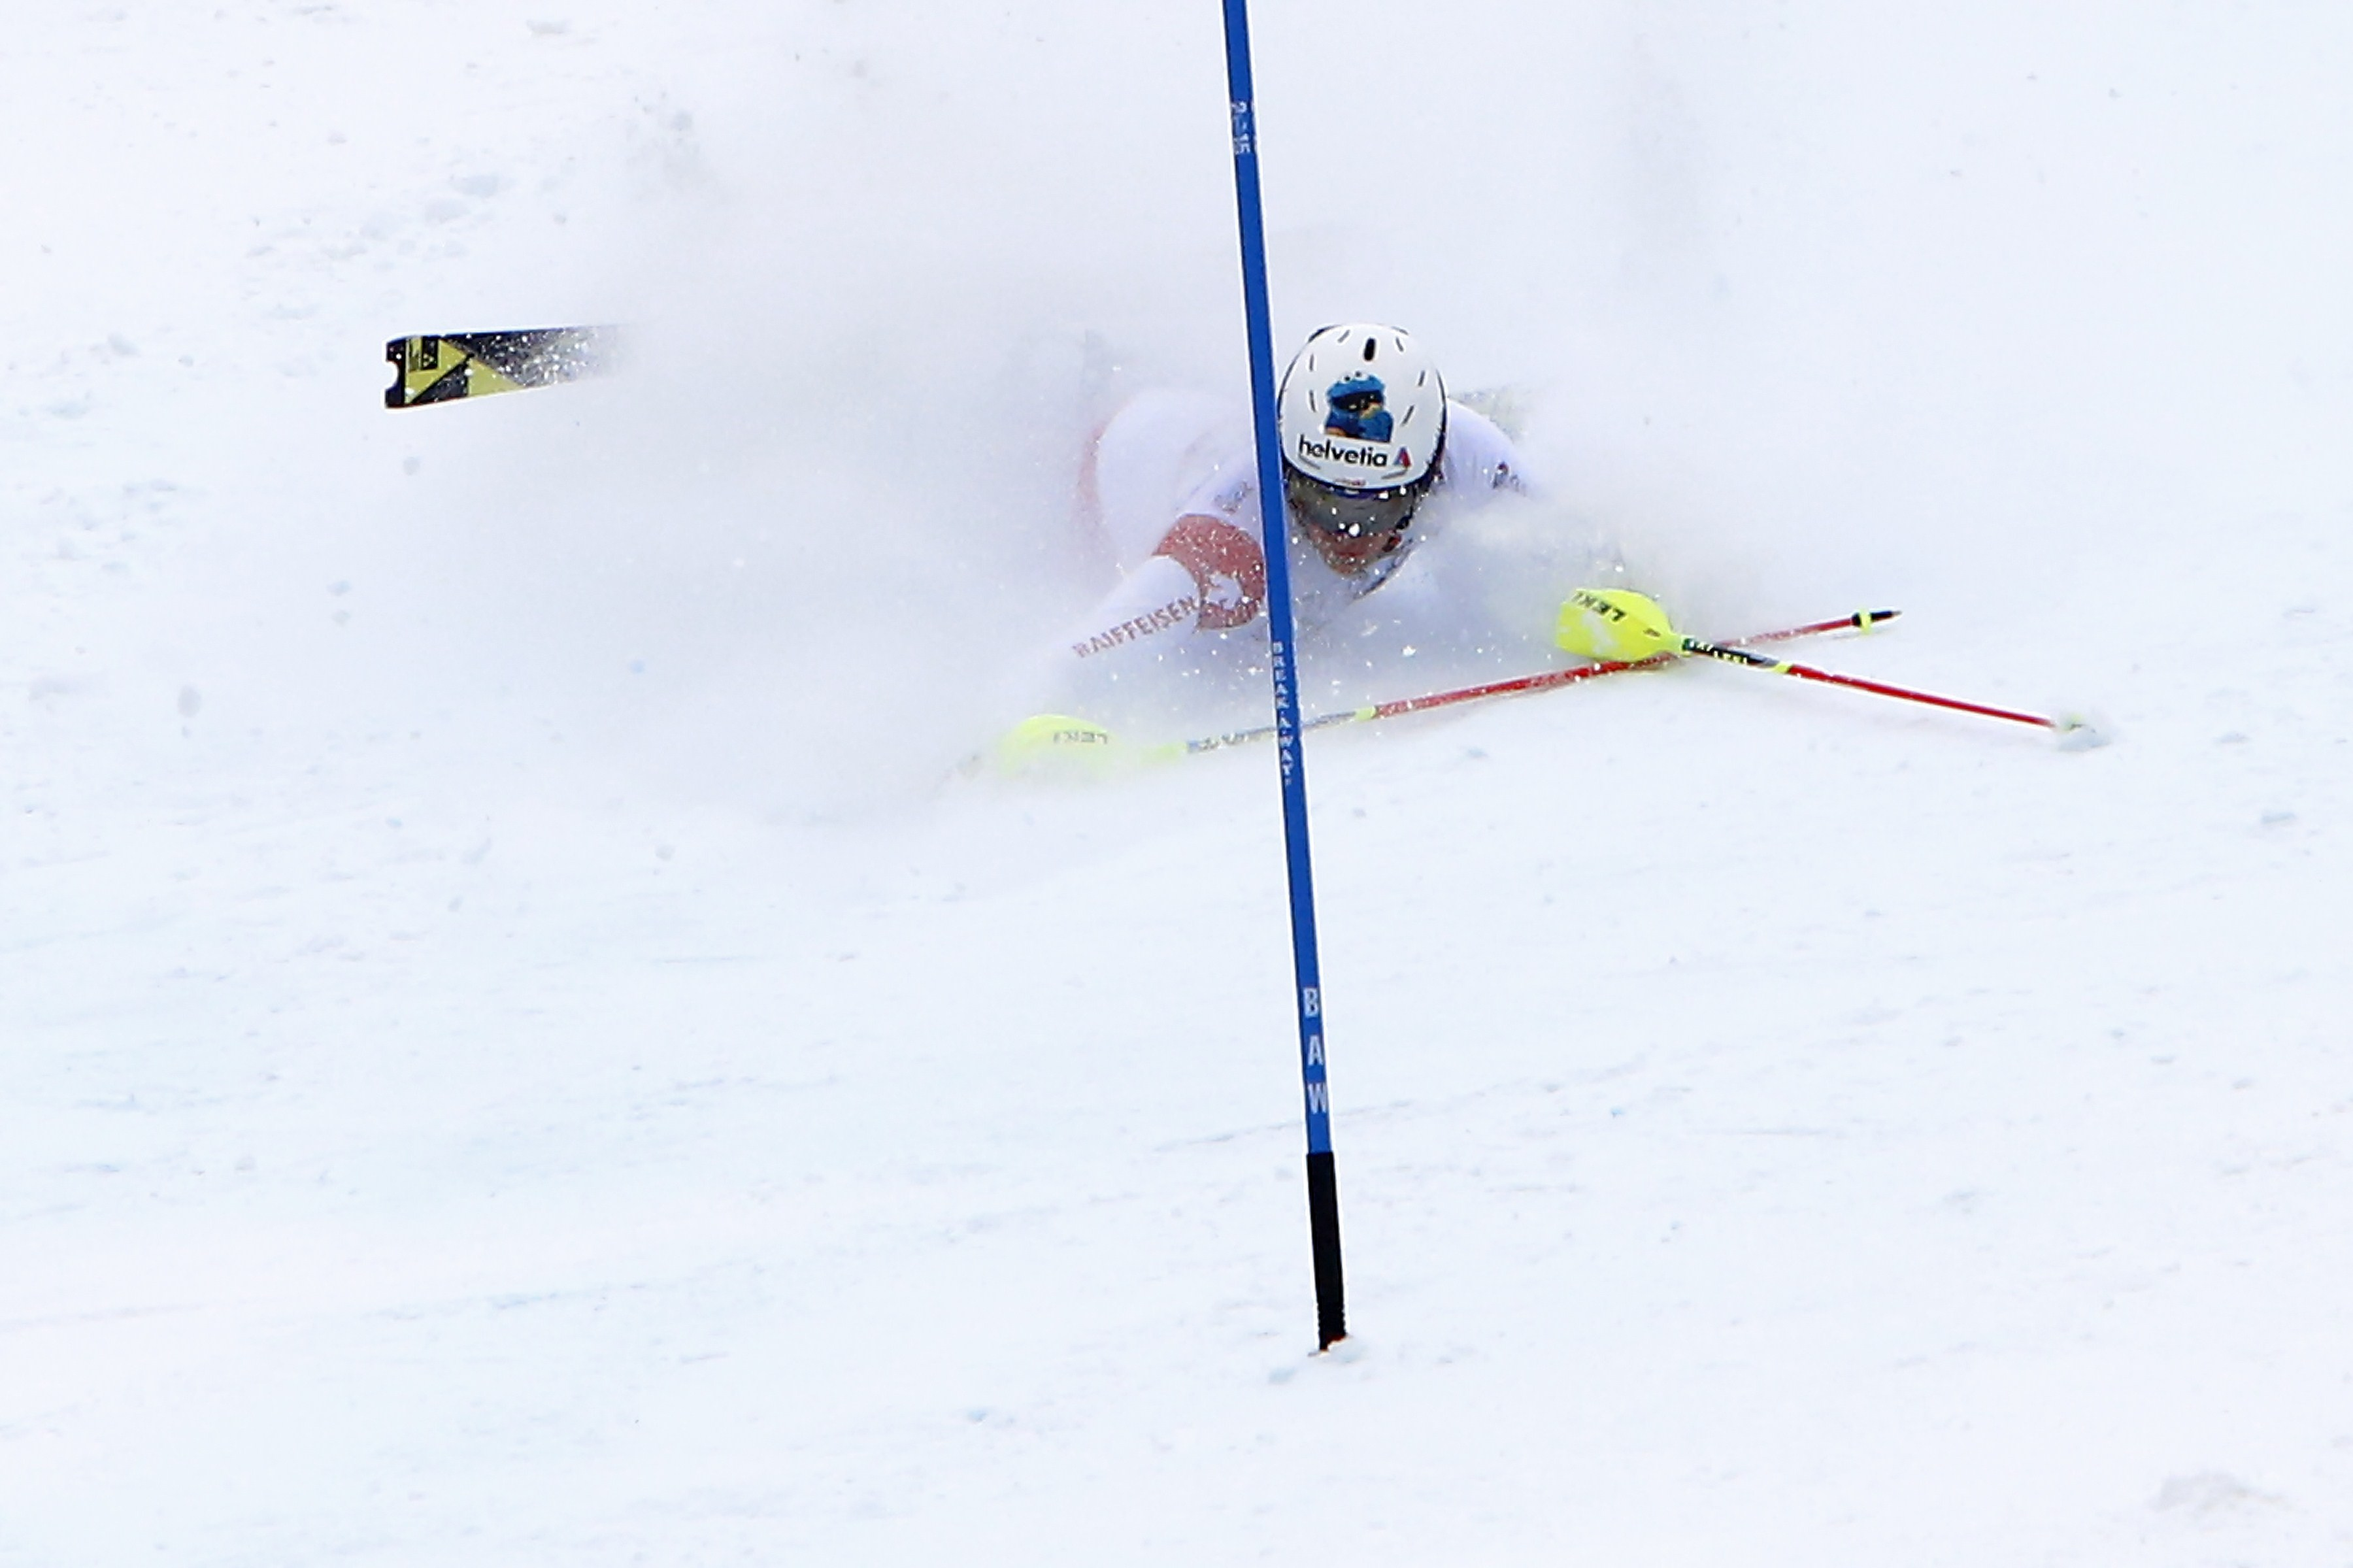 Daniel Yule of Switzerland falls on the course during the 2015 World Alpine Ski Championships men's slalom February 15, 2015 in Beaver Creek, Colorado.  (credit: NATHAN BILOW/AFP/Getty Images)